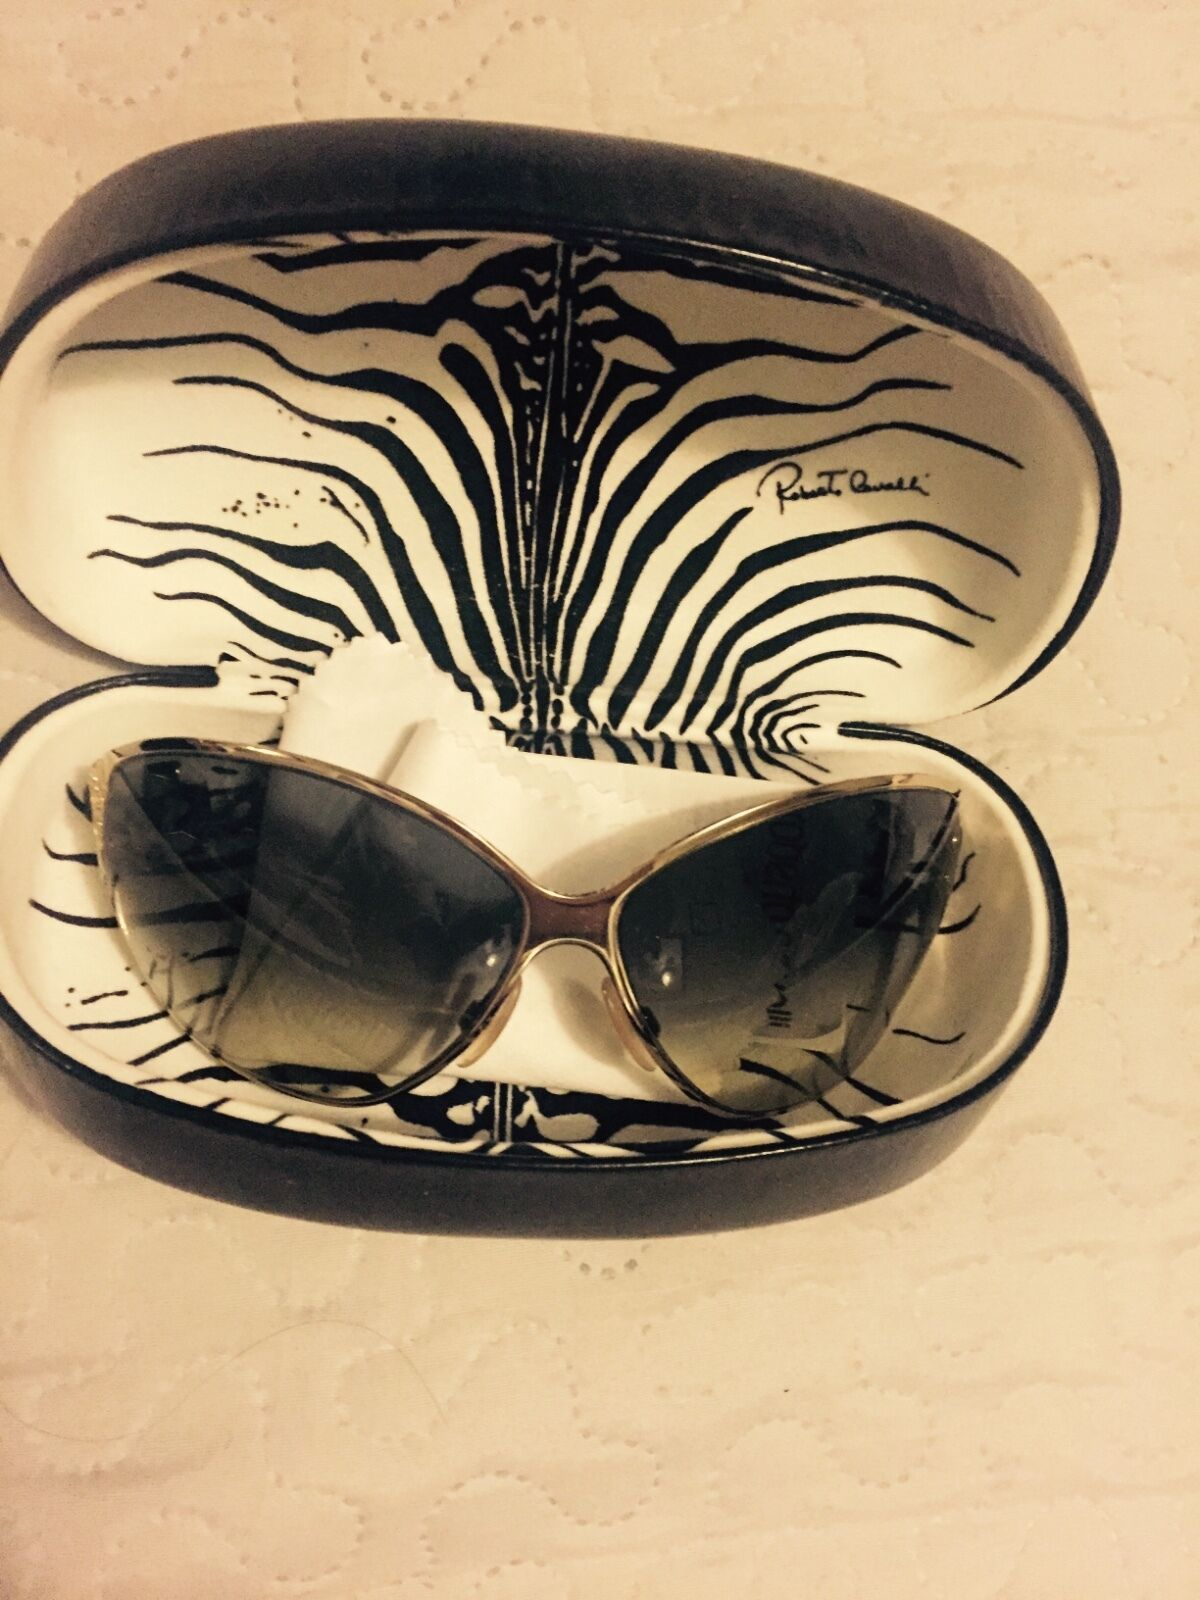 100% cavalli sunglasses snake skin (special edition great condition worn once